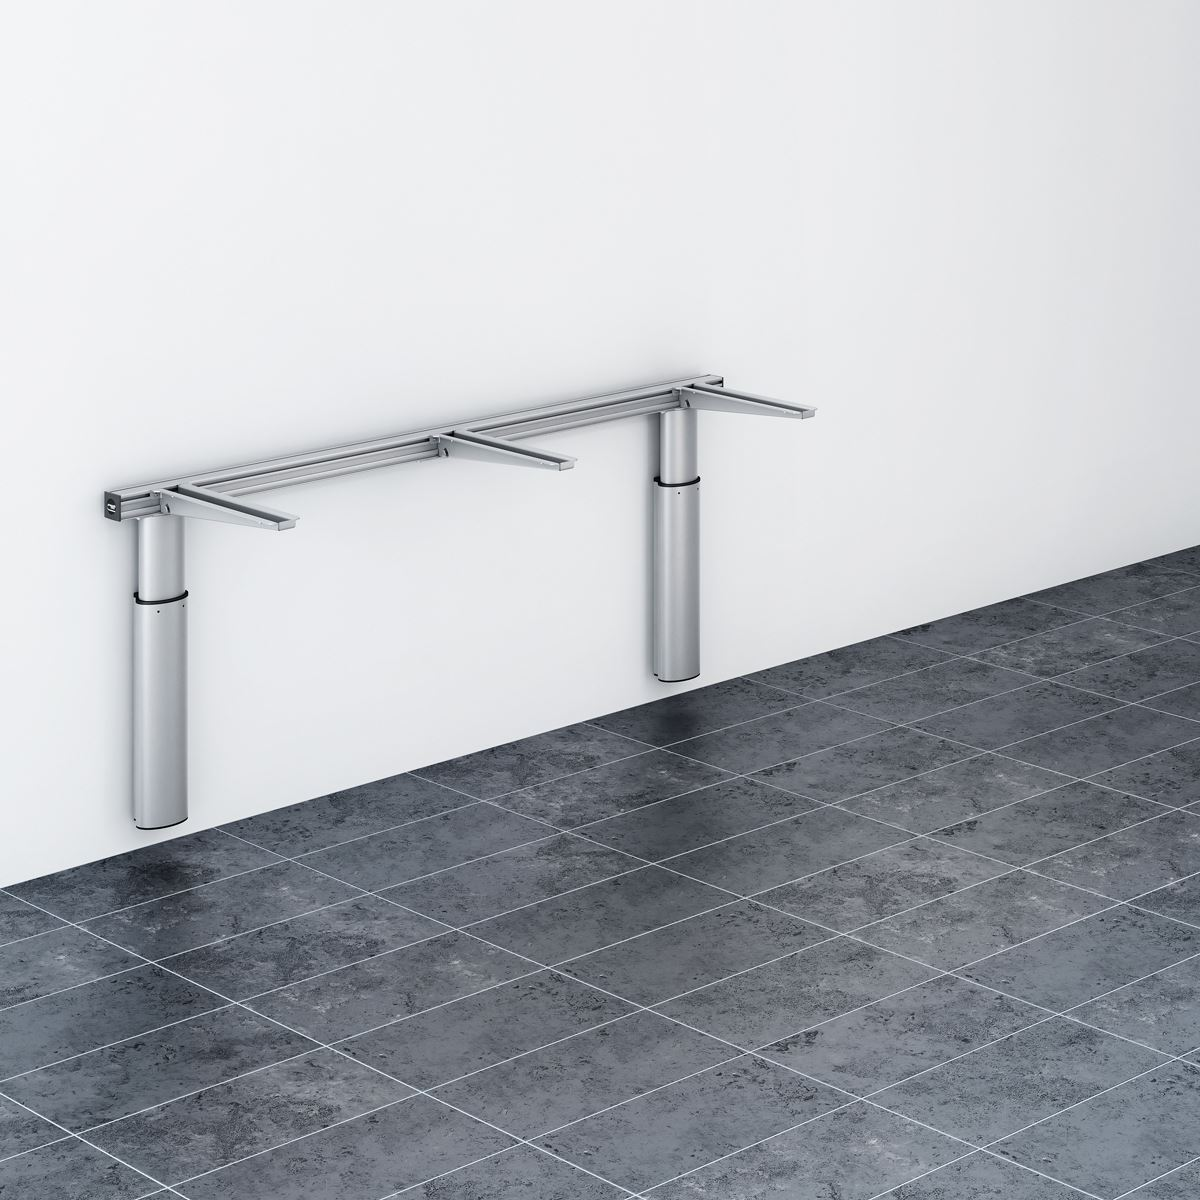 Lift for worktop, electrically height adjustable